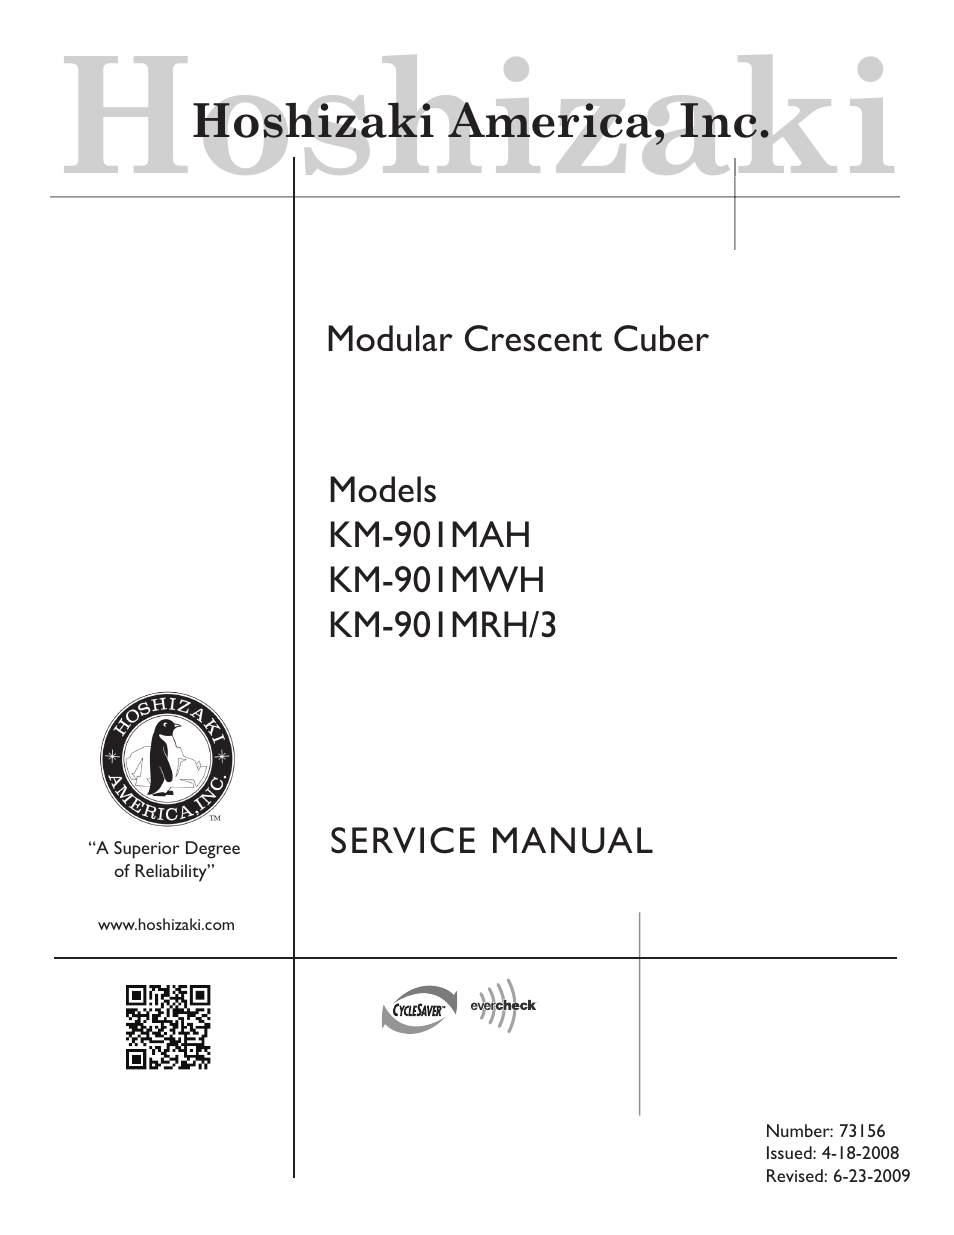 hoshizaki km 901mwh user manual 87 pages also for km 901mrh 3 rh manualsdir com Hoshizaki Manual KM-515MAH F04928c Hoshizaki 451 Mah Service Manual